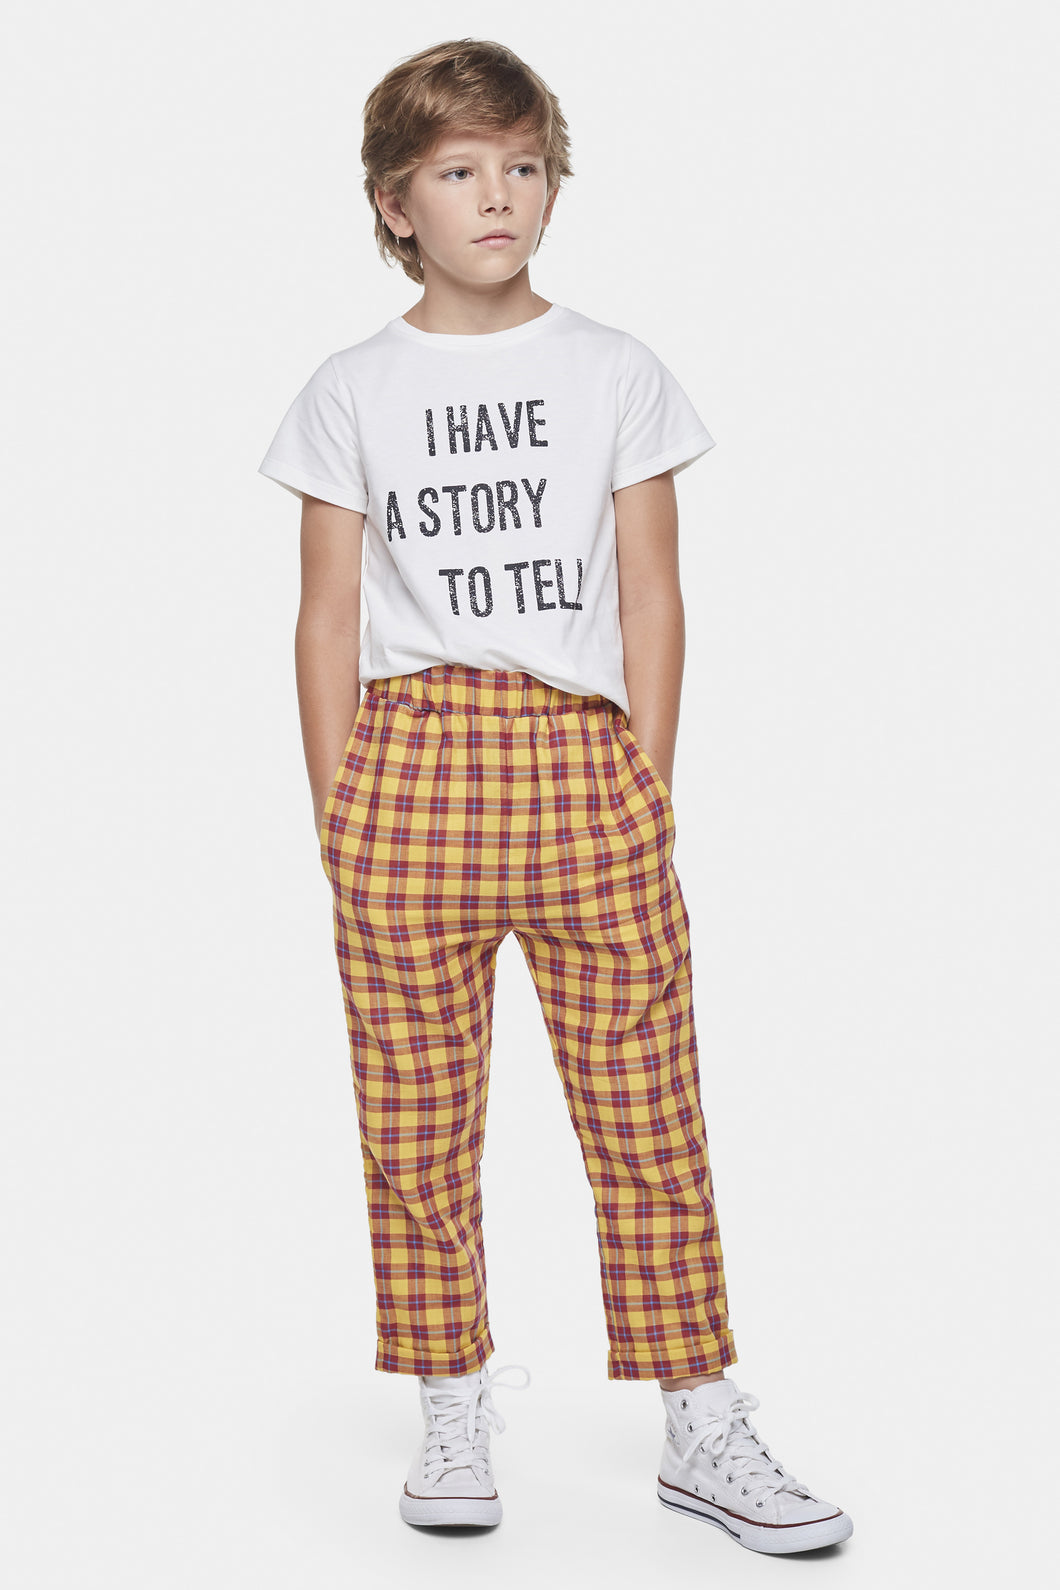 Coco Au Lait Checkered Yellow And Burgundy Trousers Trousers Multicolor Squares Yellow